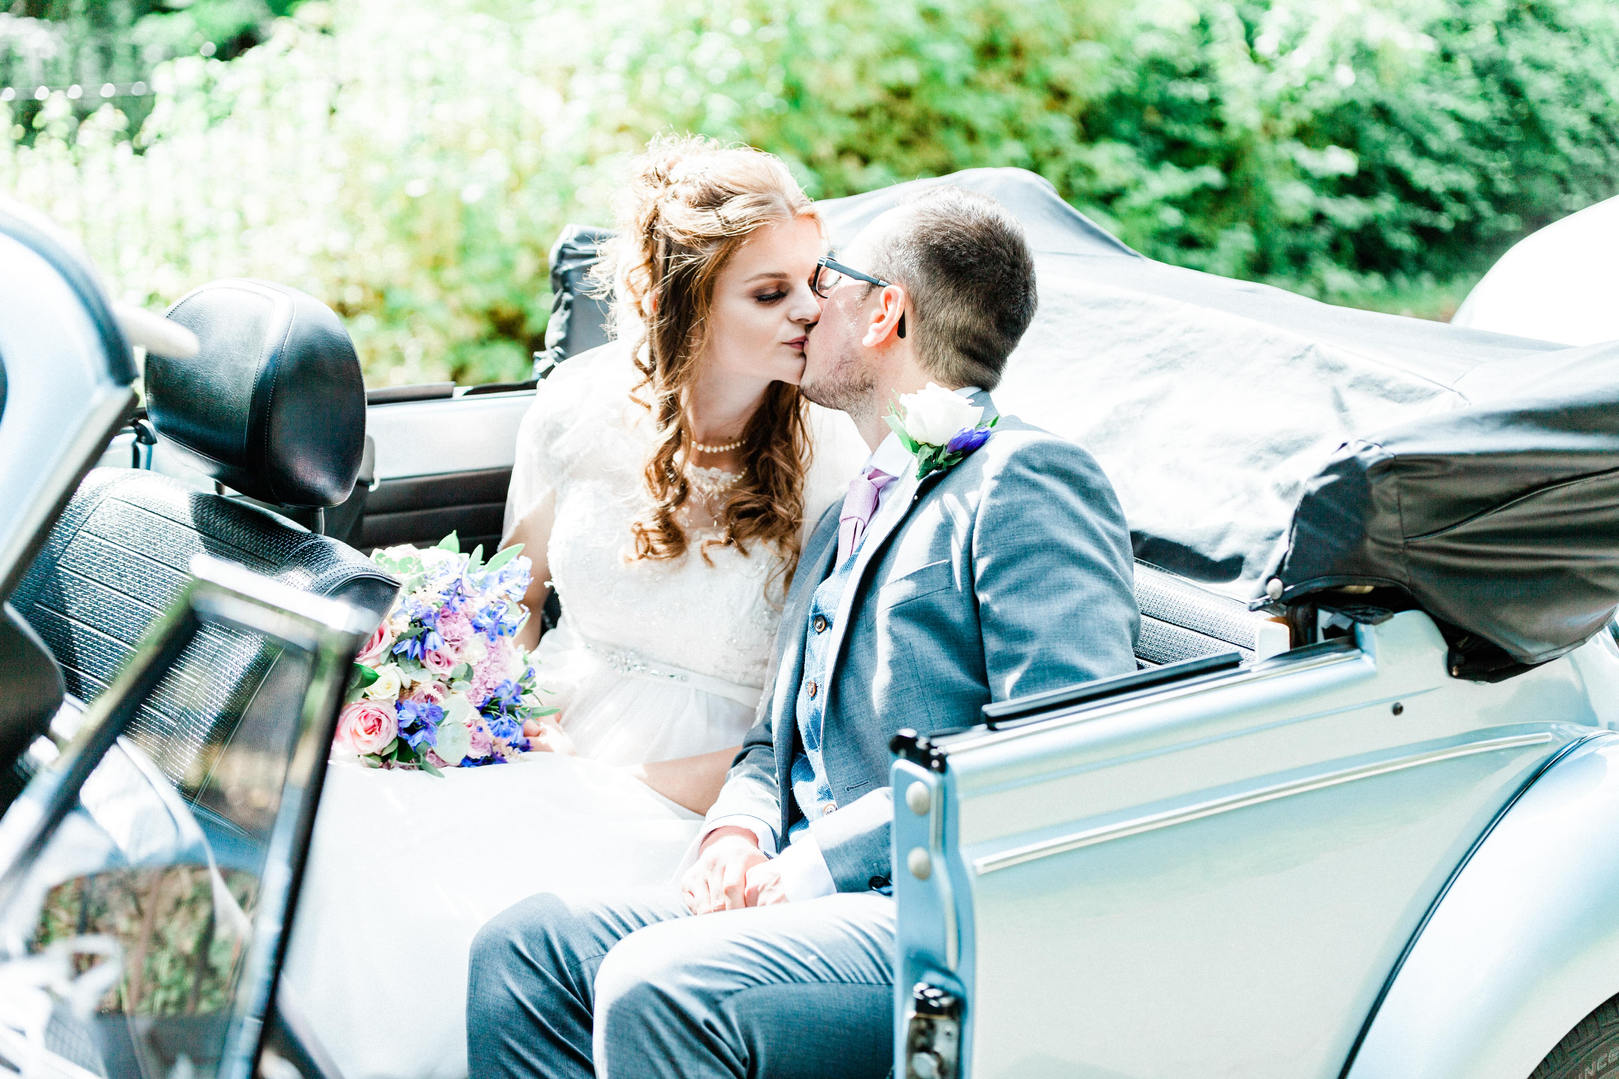 Wedding photography at Royal Victoria Park in Bath, bride and groom portrait in VW Beetle